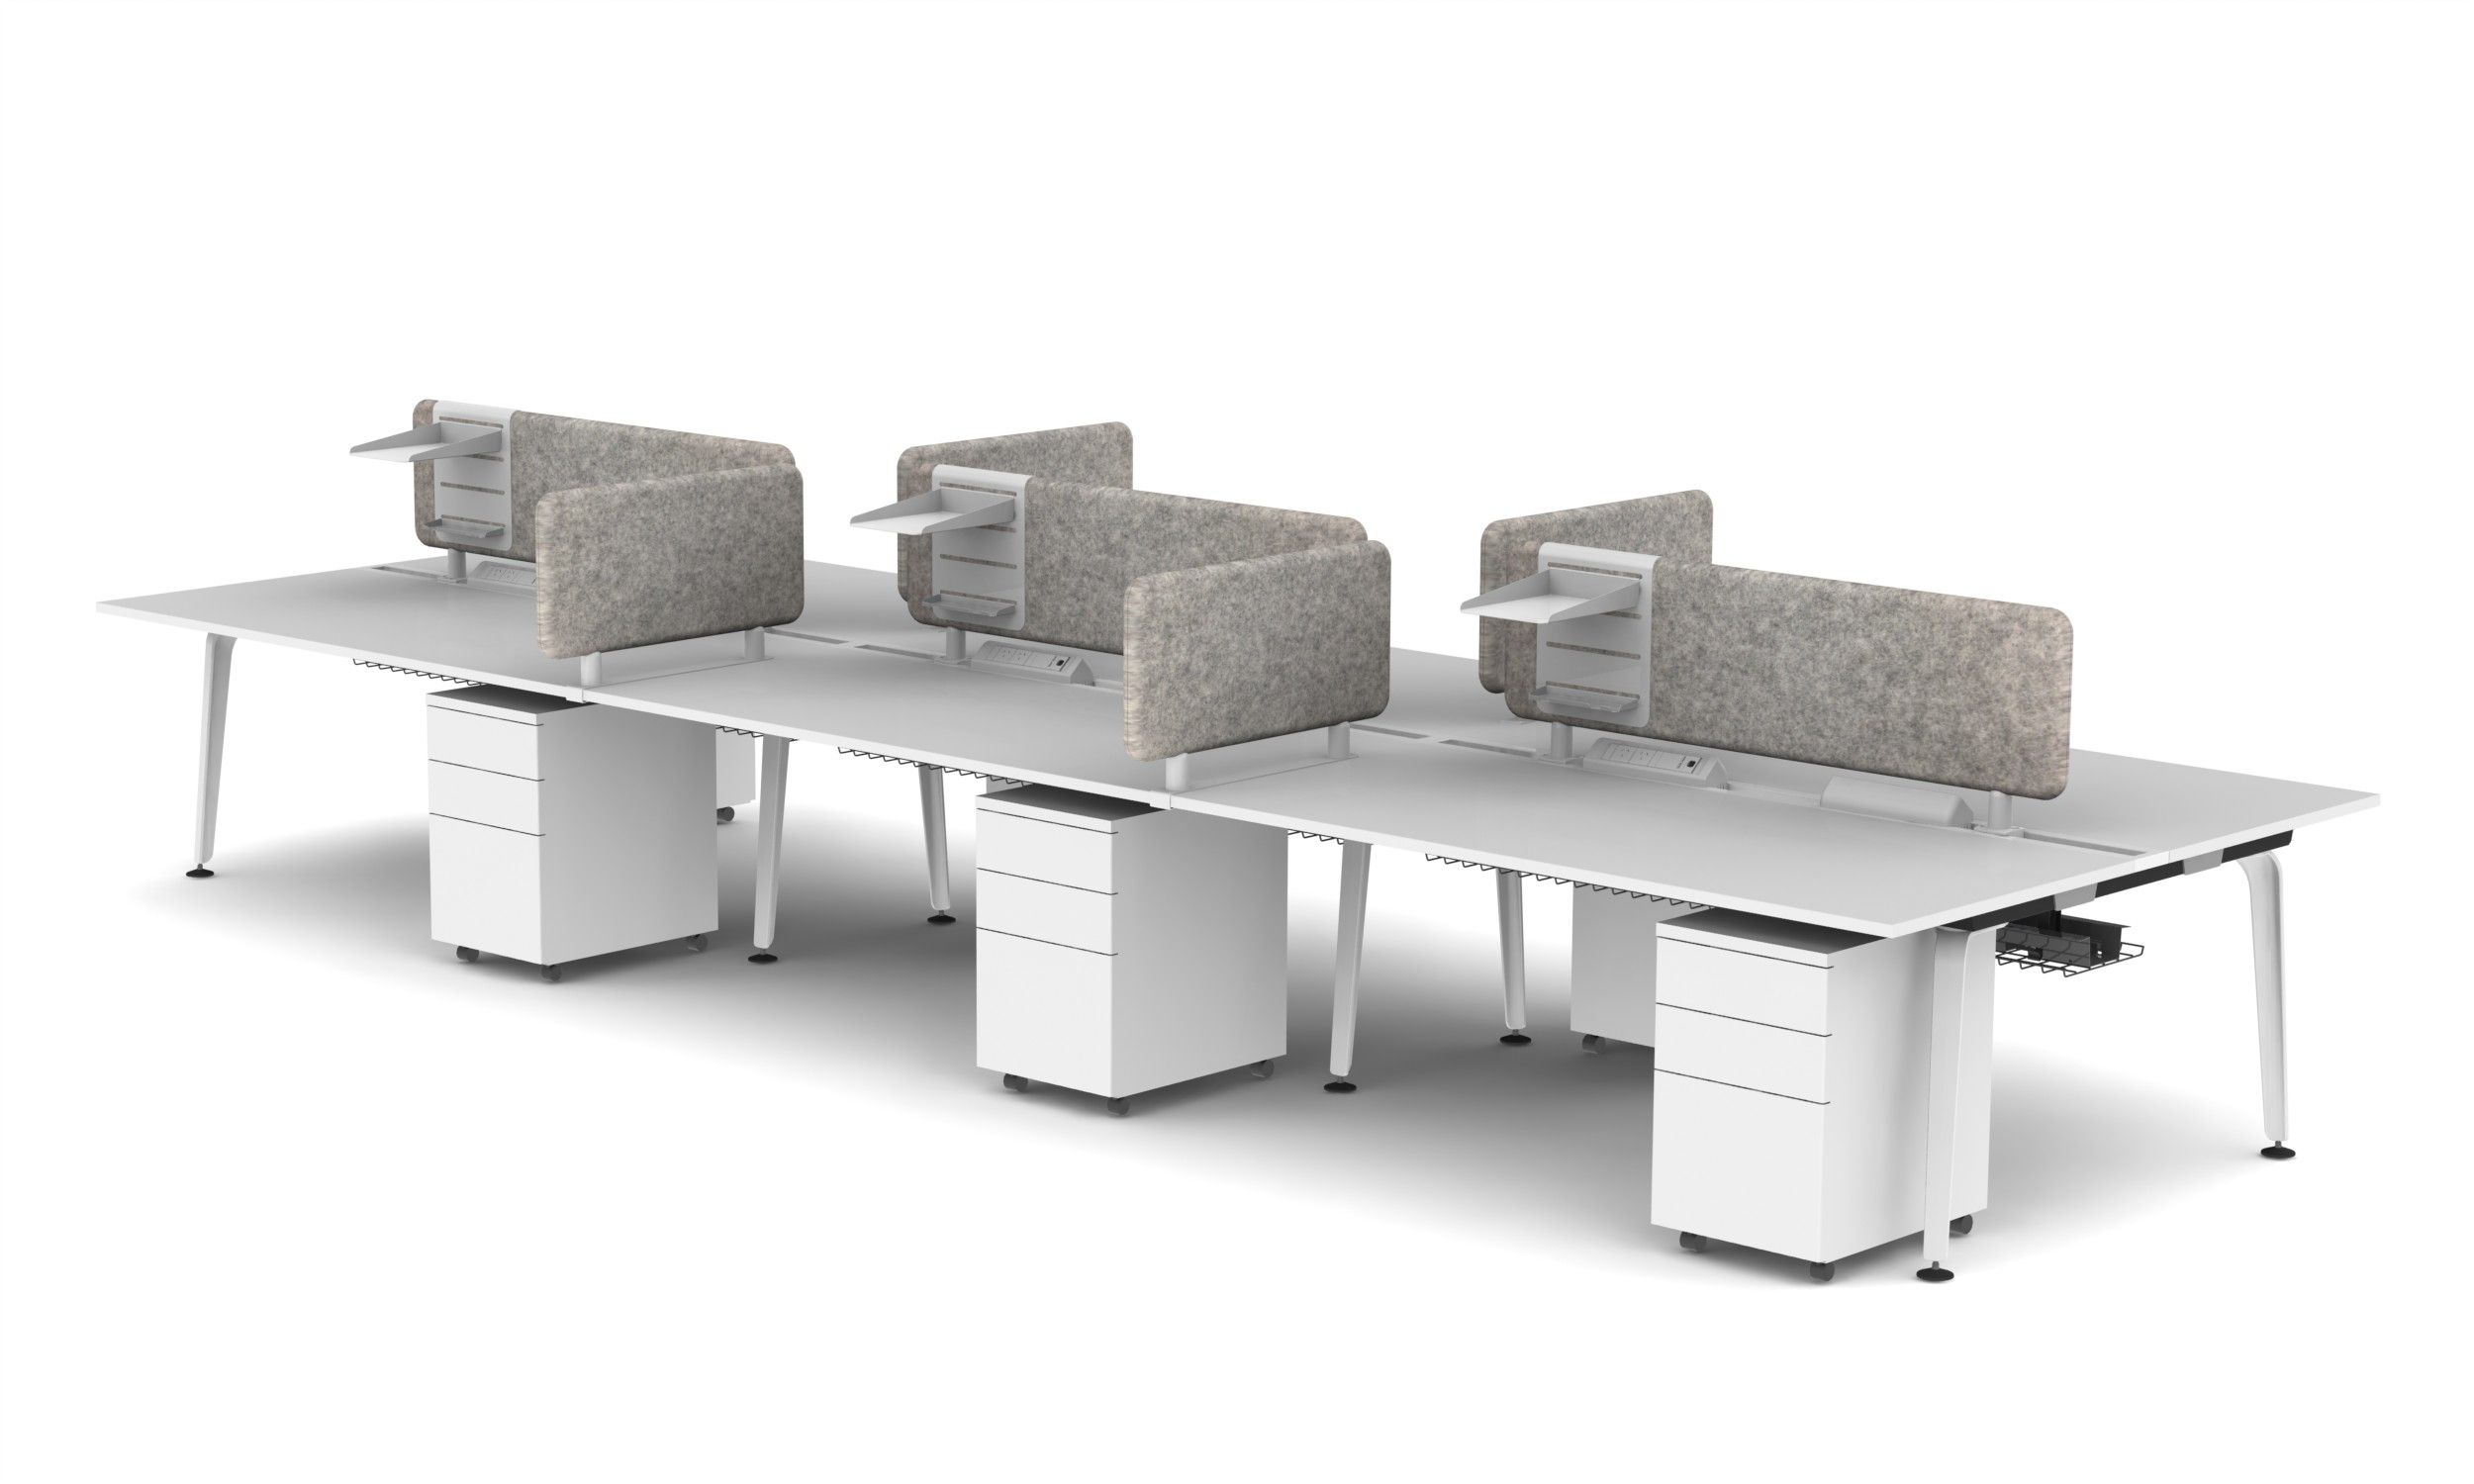 Moment 6 PAX B2B Workstation - Pearl White, Screens, Interpersonal screens and Accessory Trays